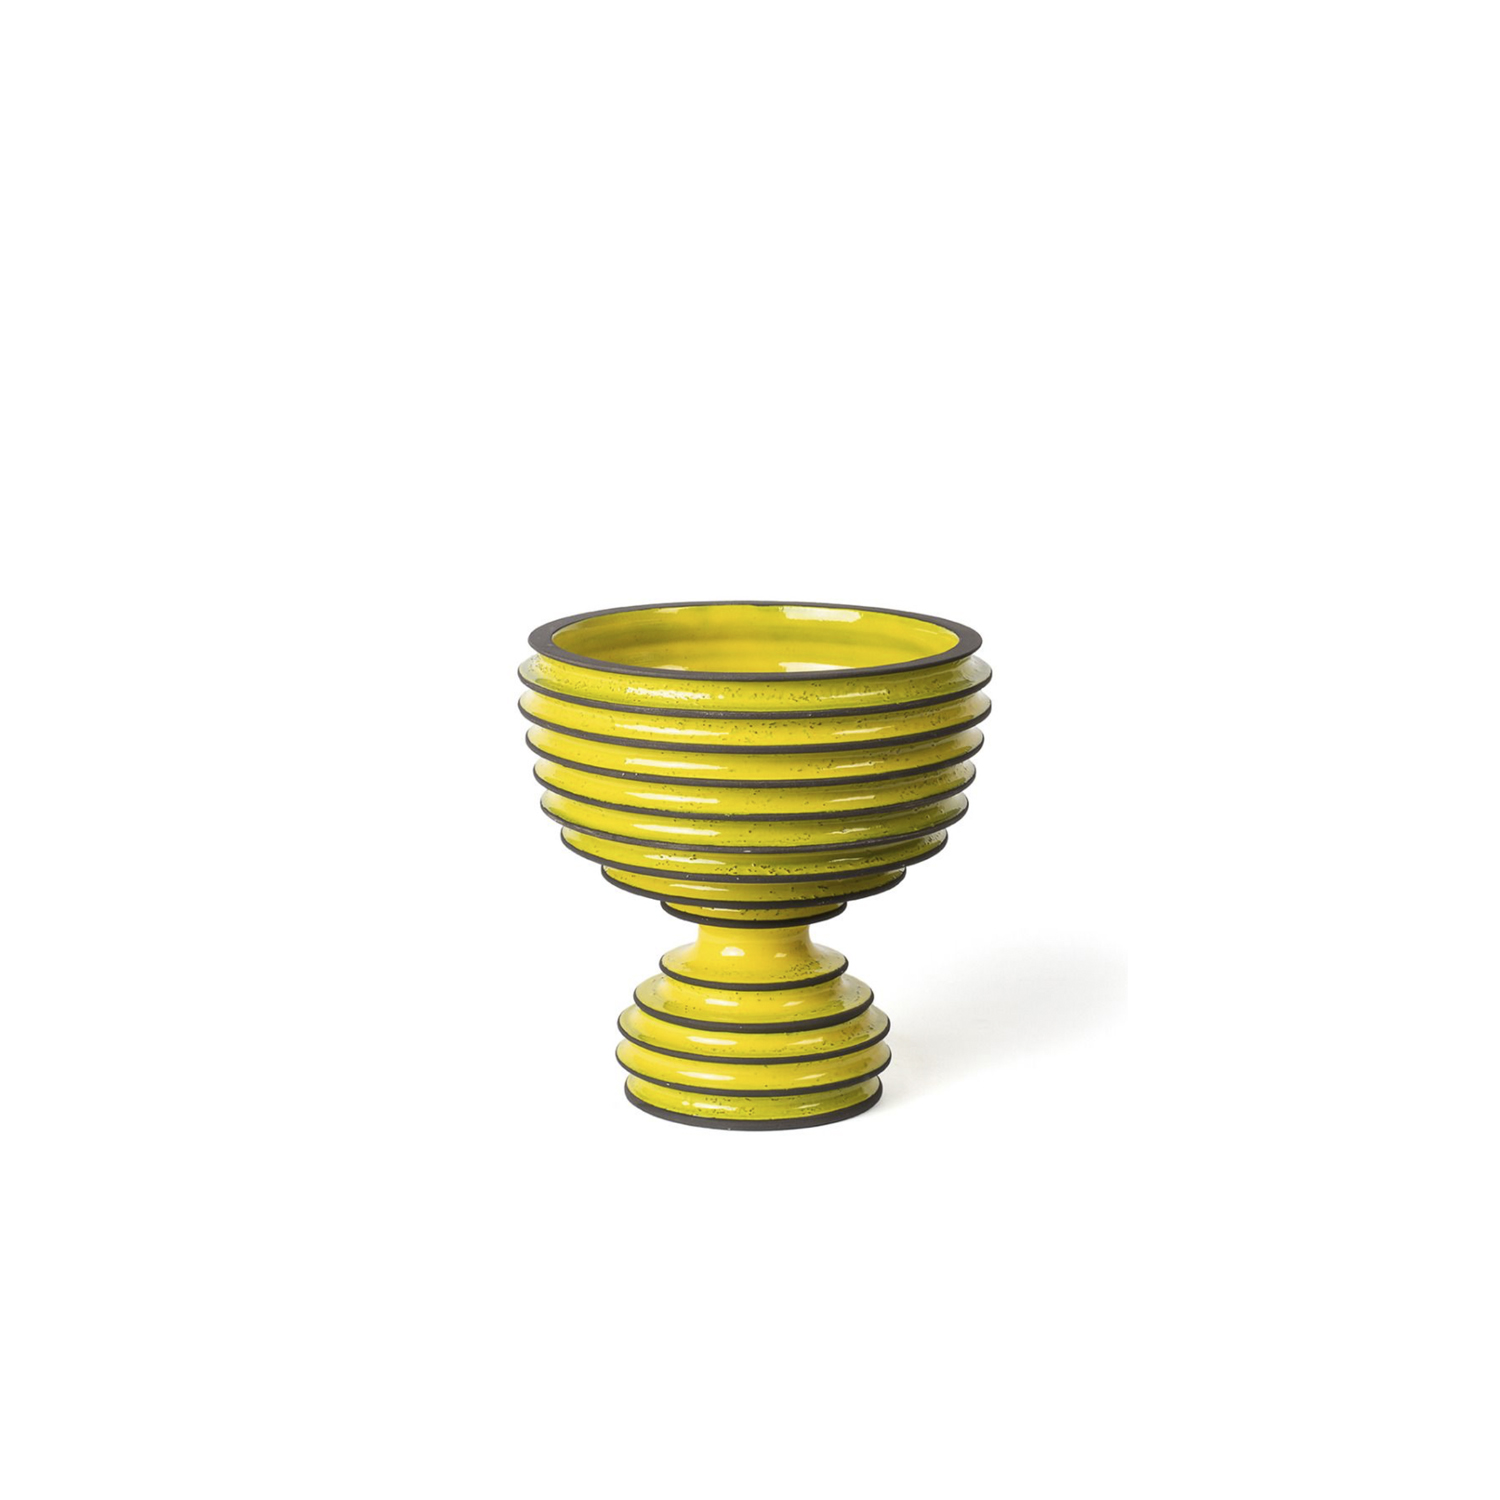 Yellow Footed Bowl - A traditional design dressed in a stylish contemporary suite, this ceramic goblet is part of the exclusive Revolver Collection, showcased at Milan Design Week in 2019. The hourglass-shaped, orange-hued silhouette features a spacious bowl resting on a convex base, both distinguished by a deeply ribbed texture accented by brown edges. | Matter of Stuff